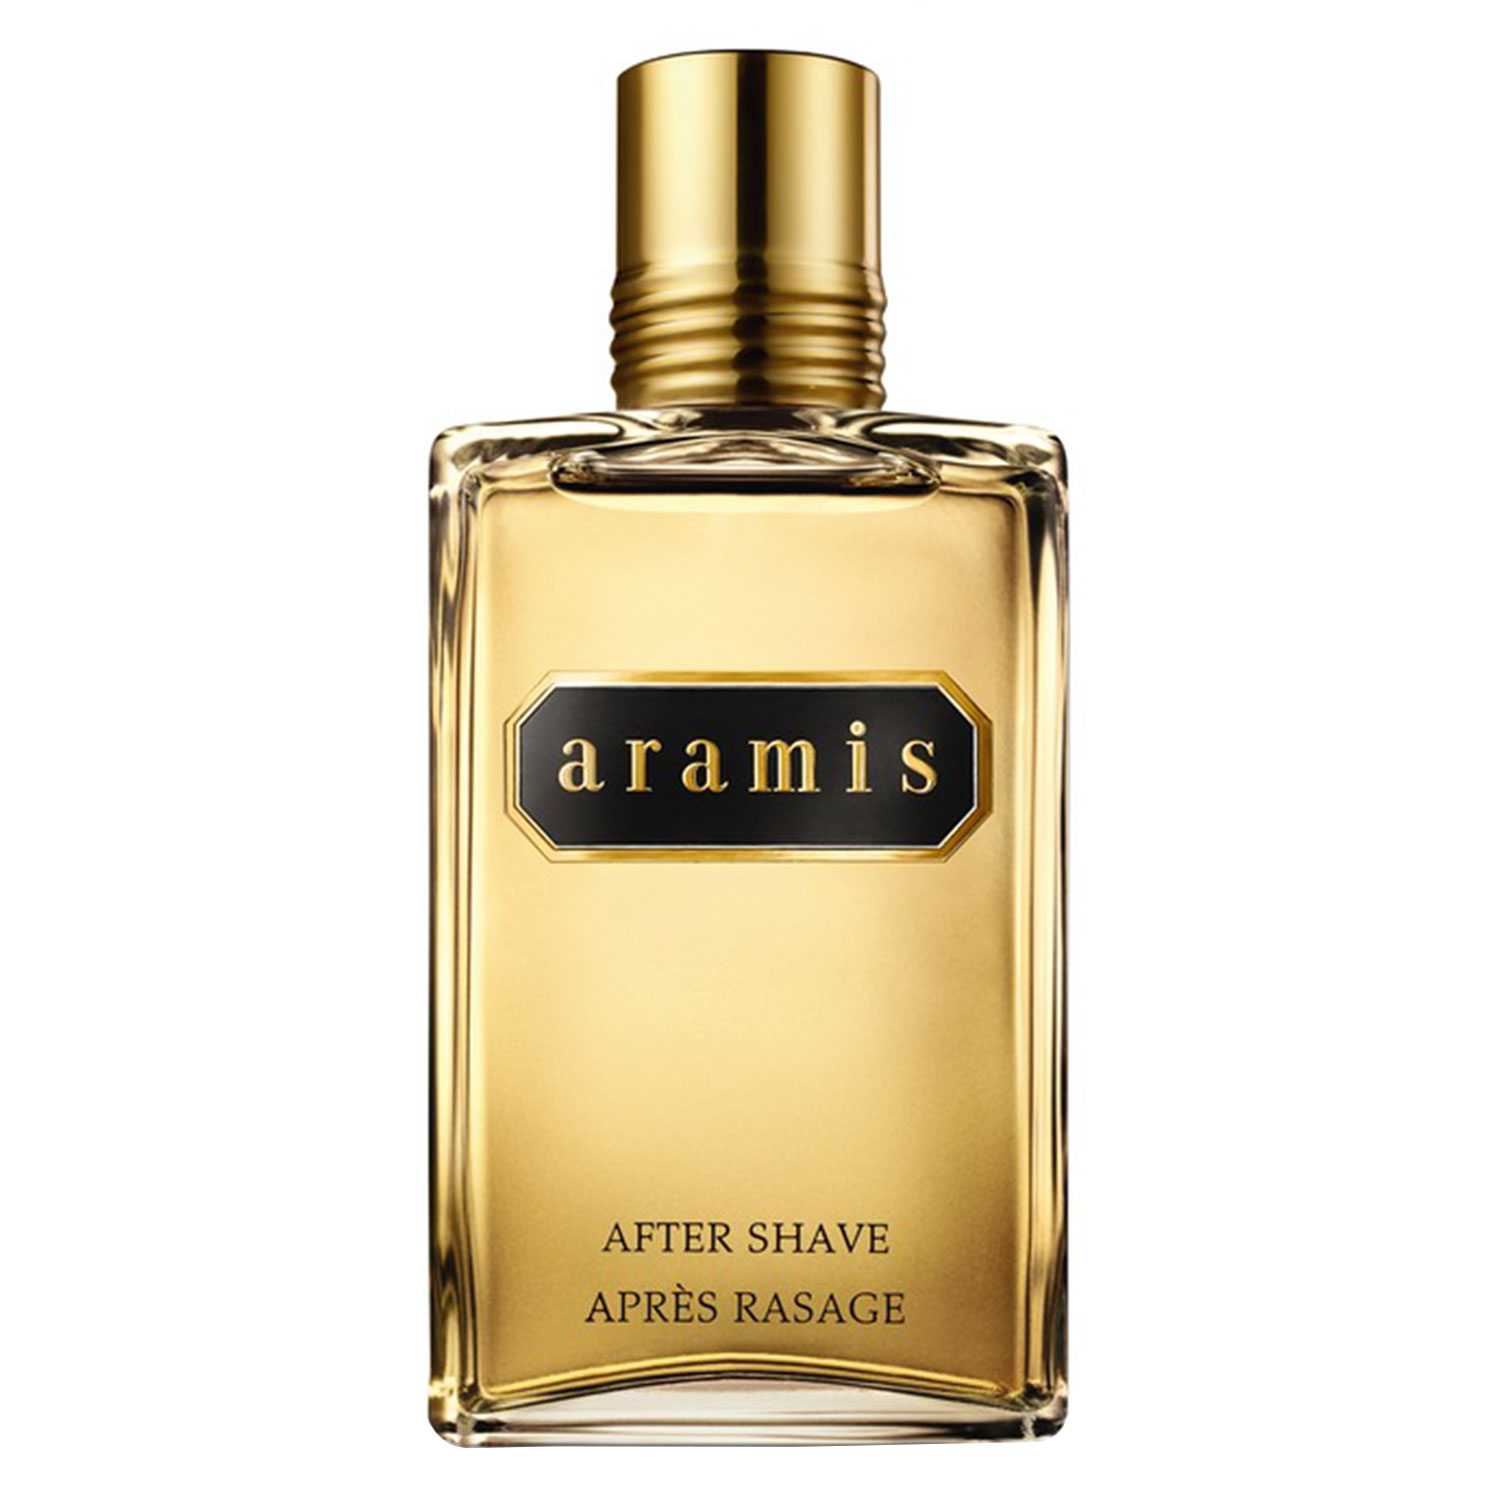 Aramis Classic - After Shave